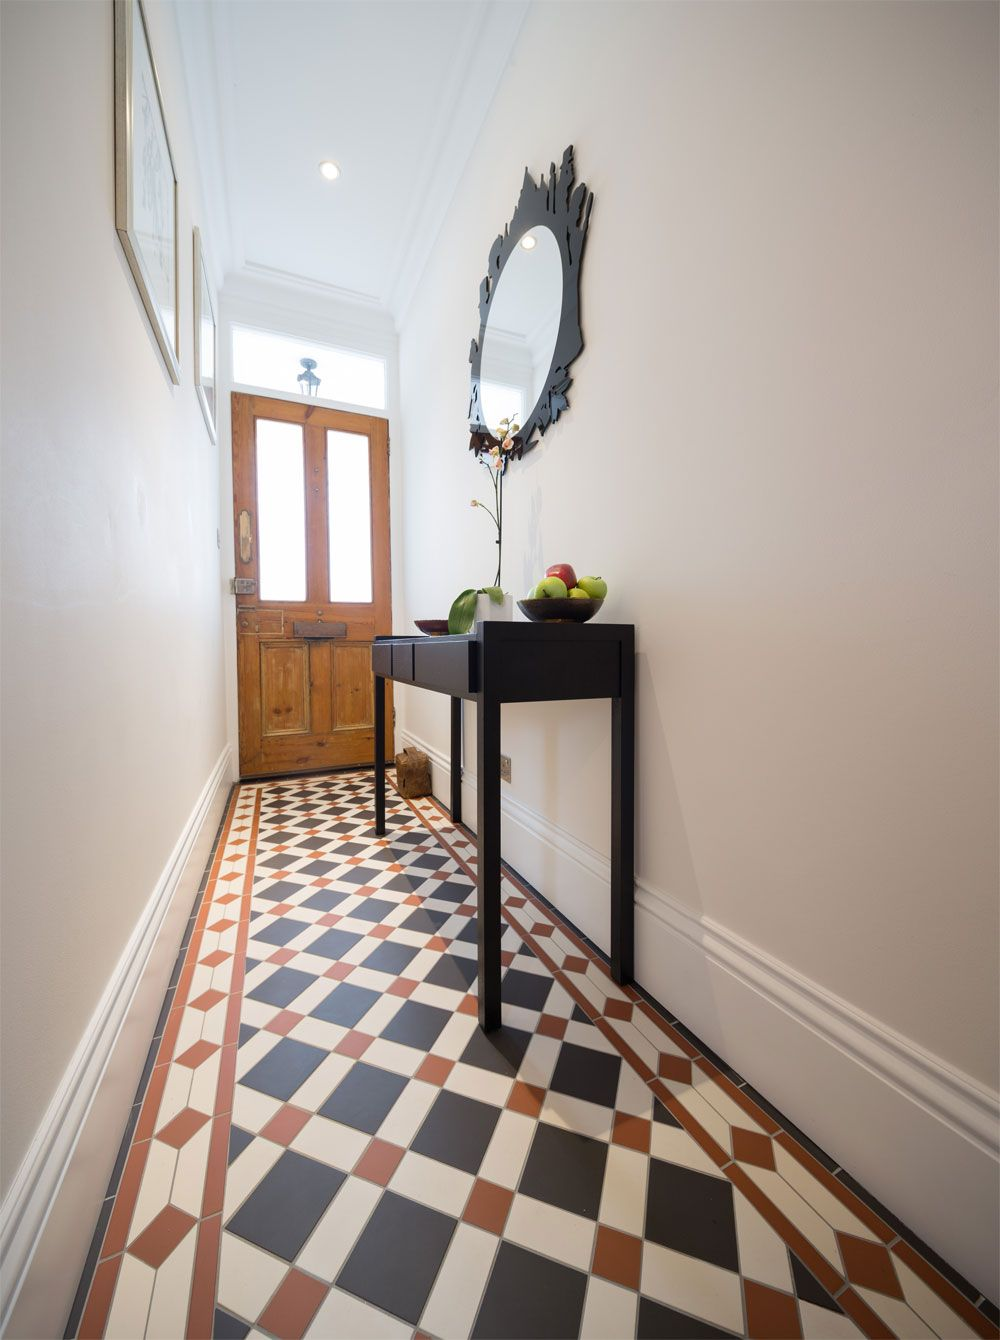 The falkirk pattern victorian floor tiles by original style the falkirk pattern victorian floor tiles by original style dailygadgetfo Choice Image